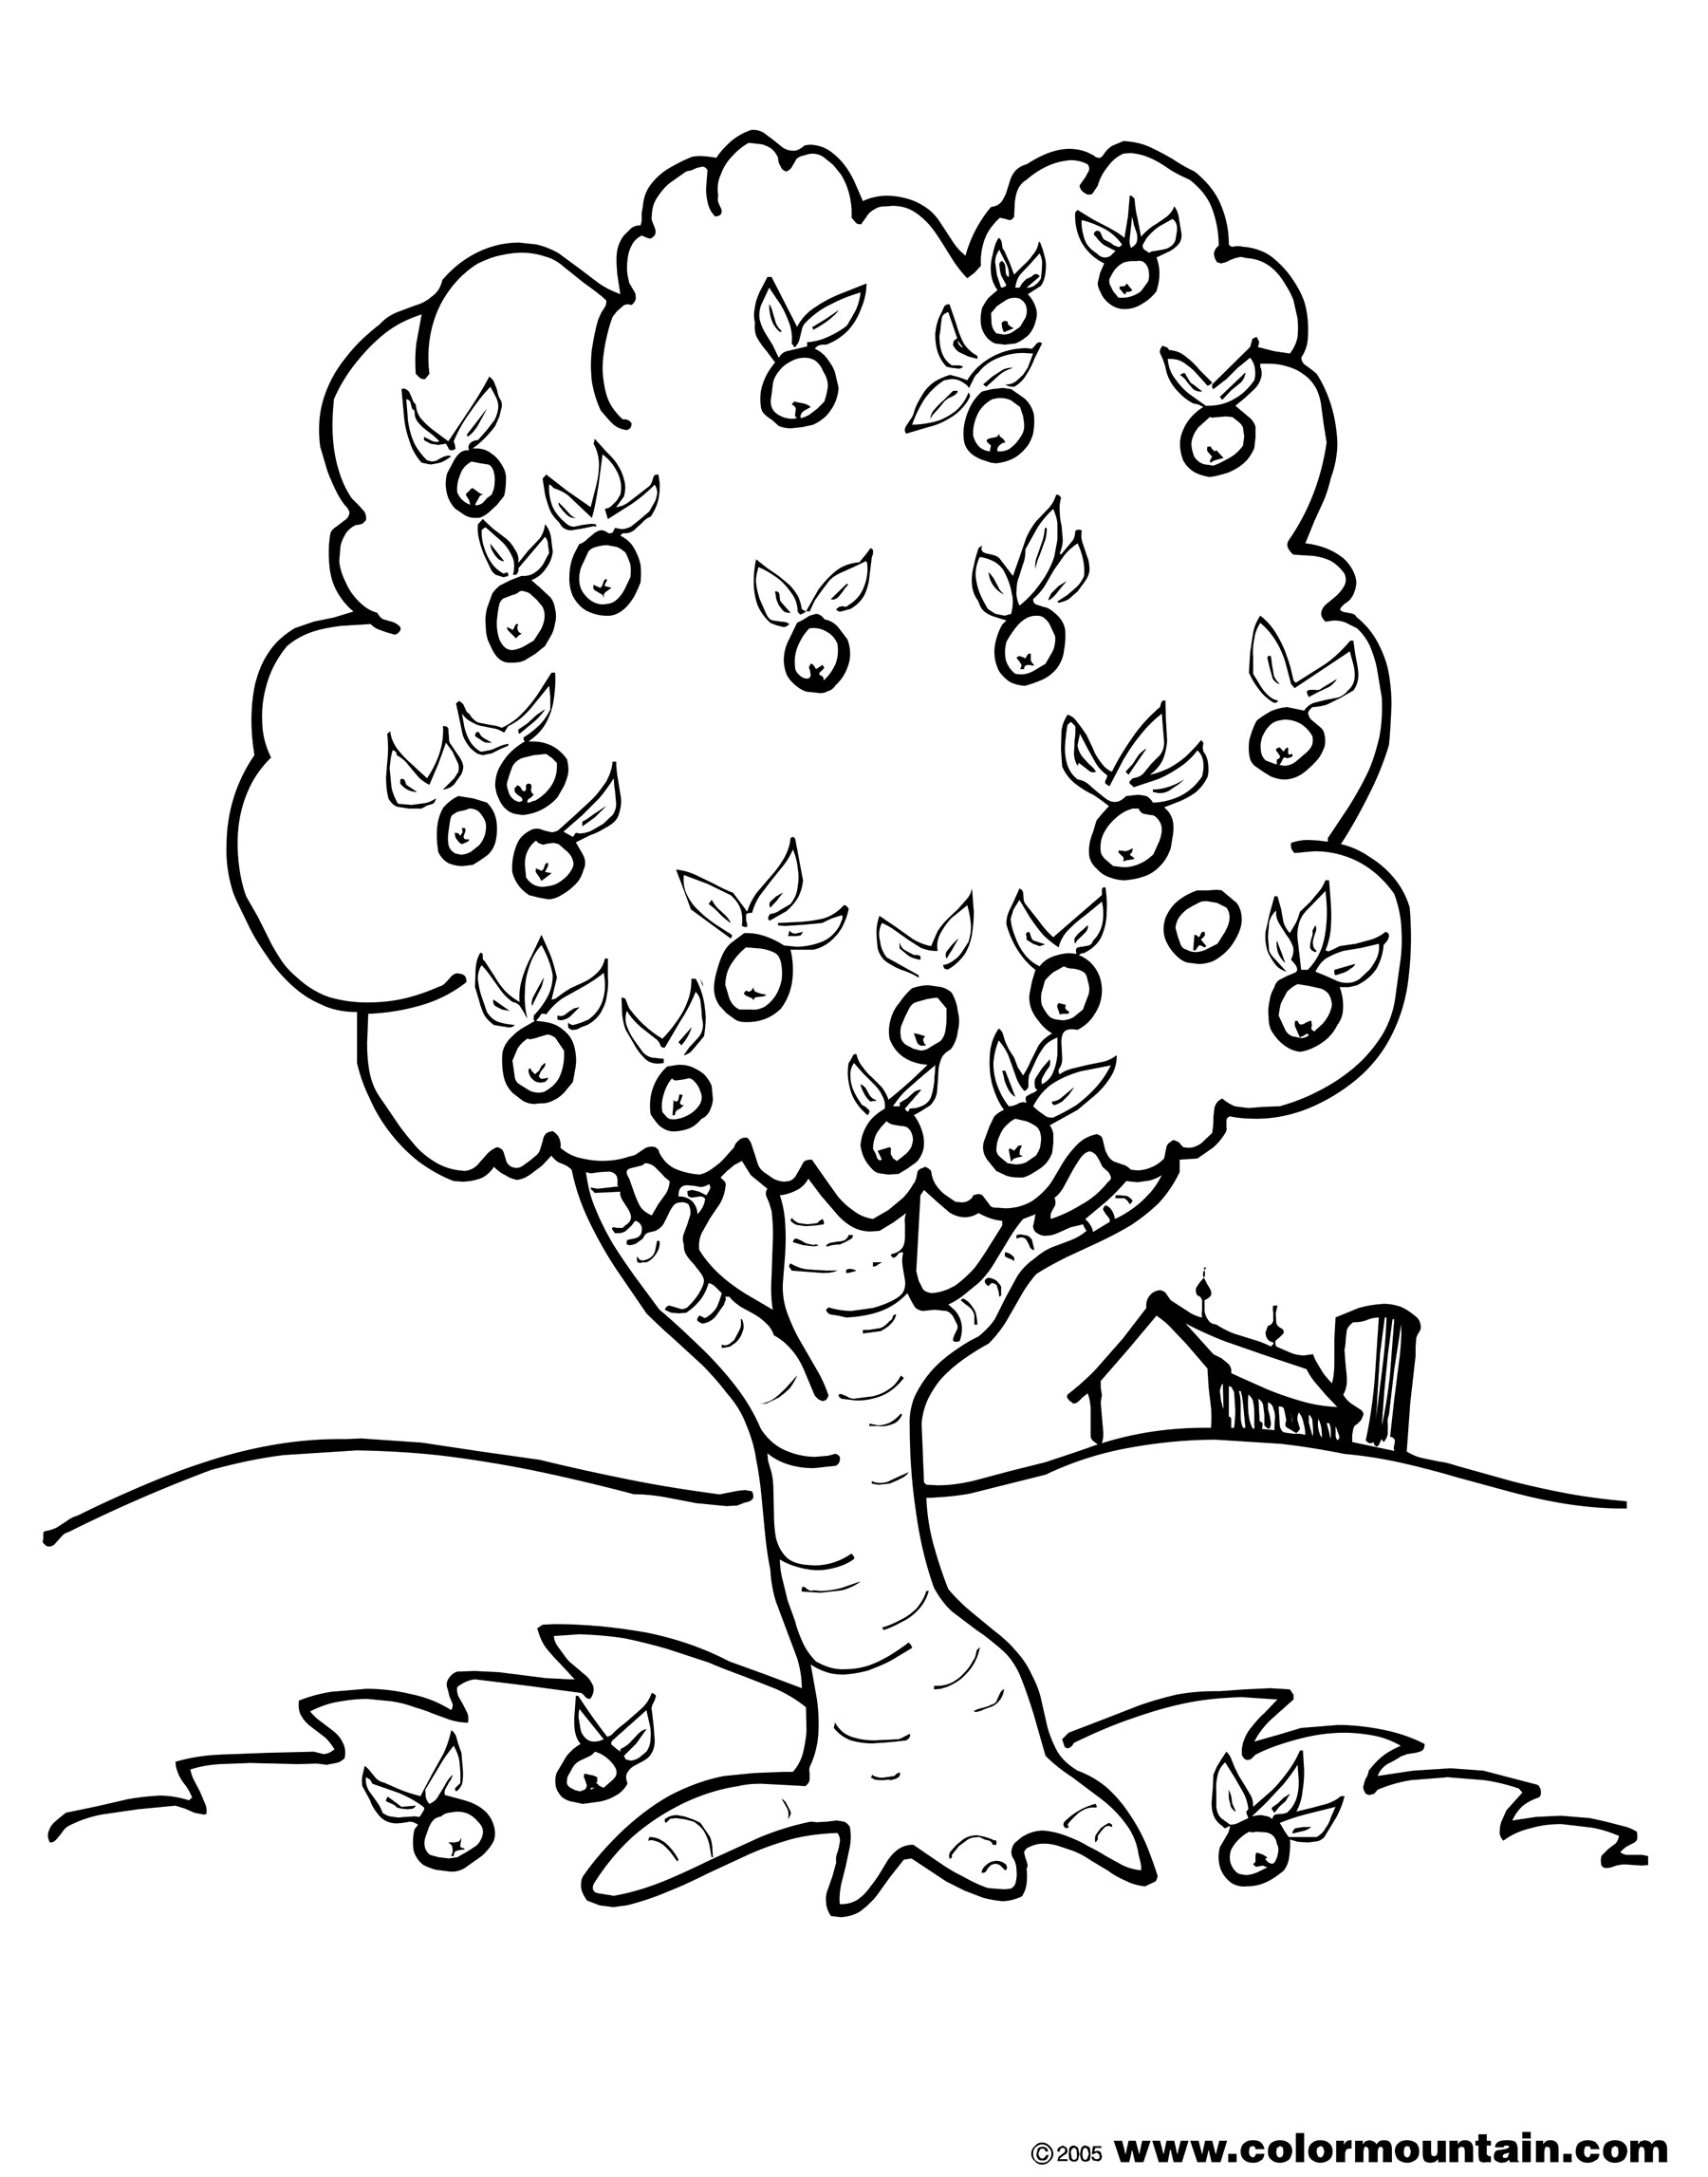 coloring page of apple tree apple tree color page create a printout or activity of coloring tree apple page